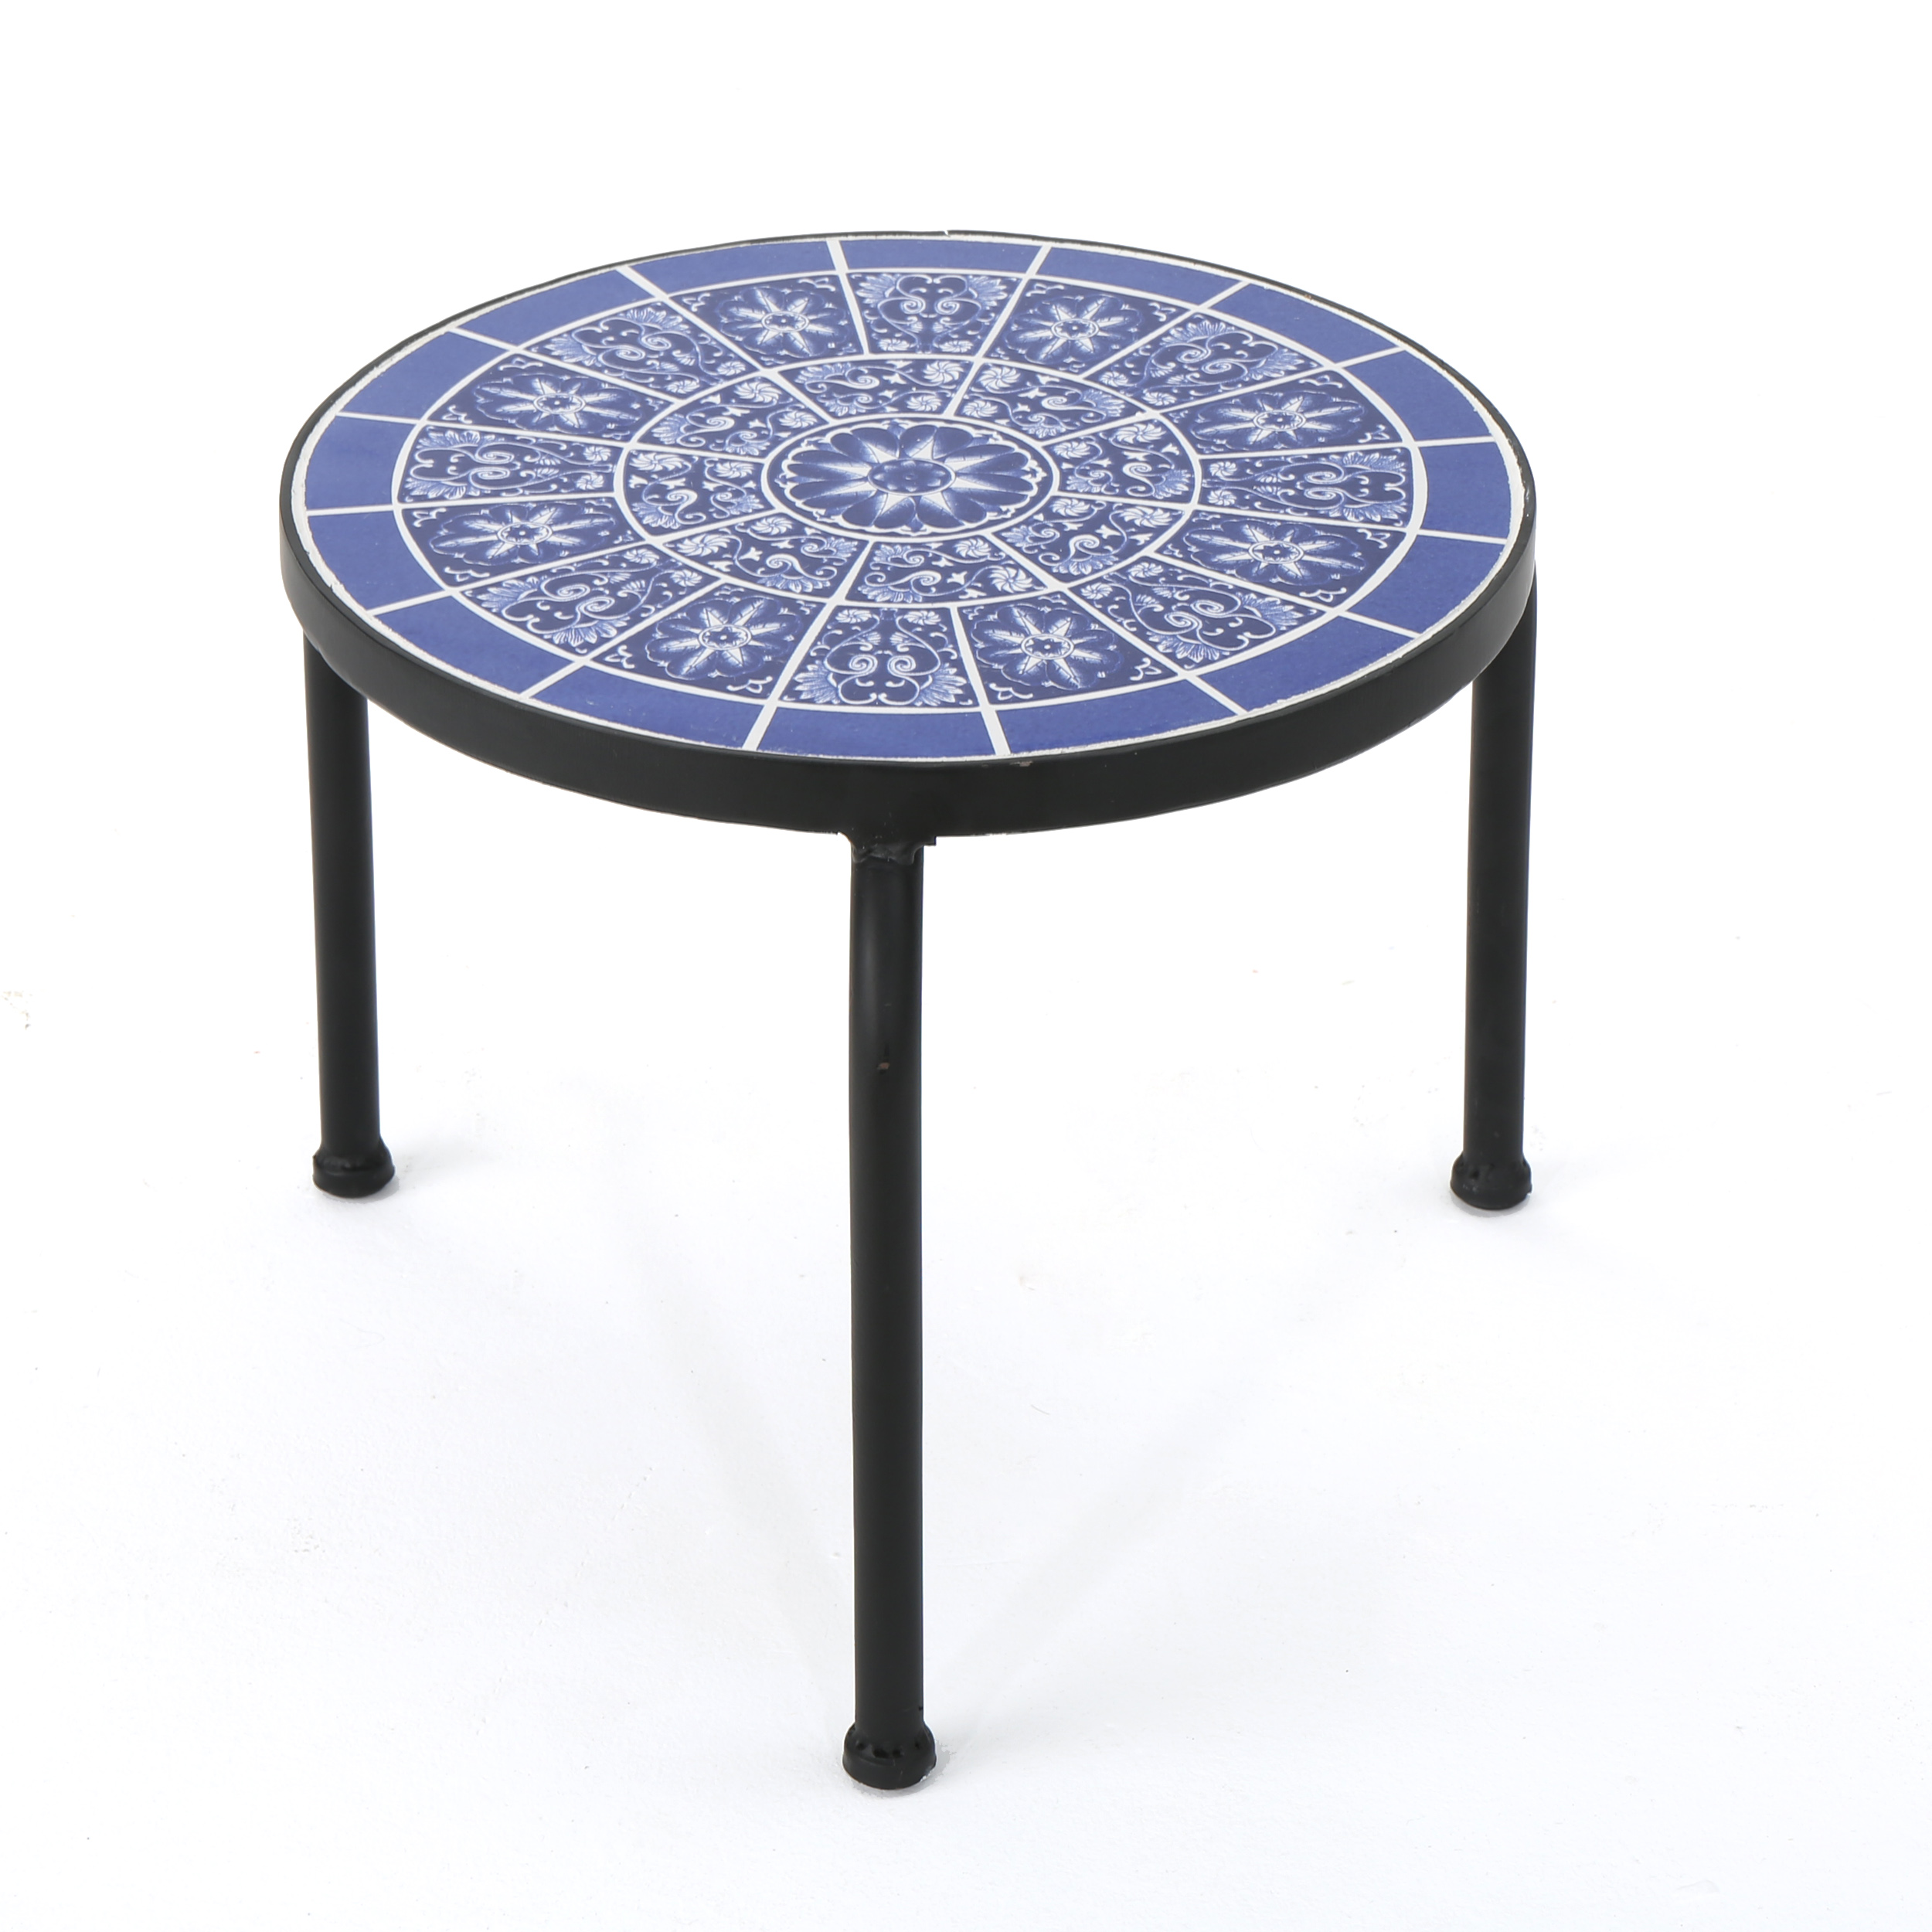 soleil outdoor ceramic tile side table with iron frame blue and white barnwood cabinets how met your mother yellow umbrella marble top sofa circular garden furniture covers small